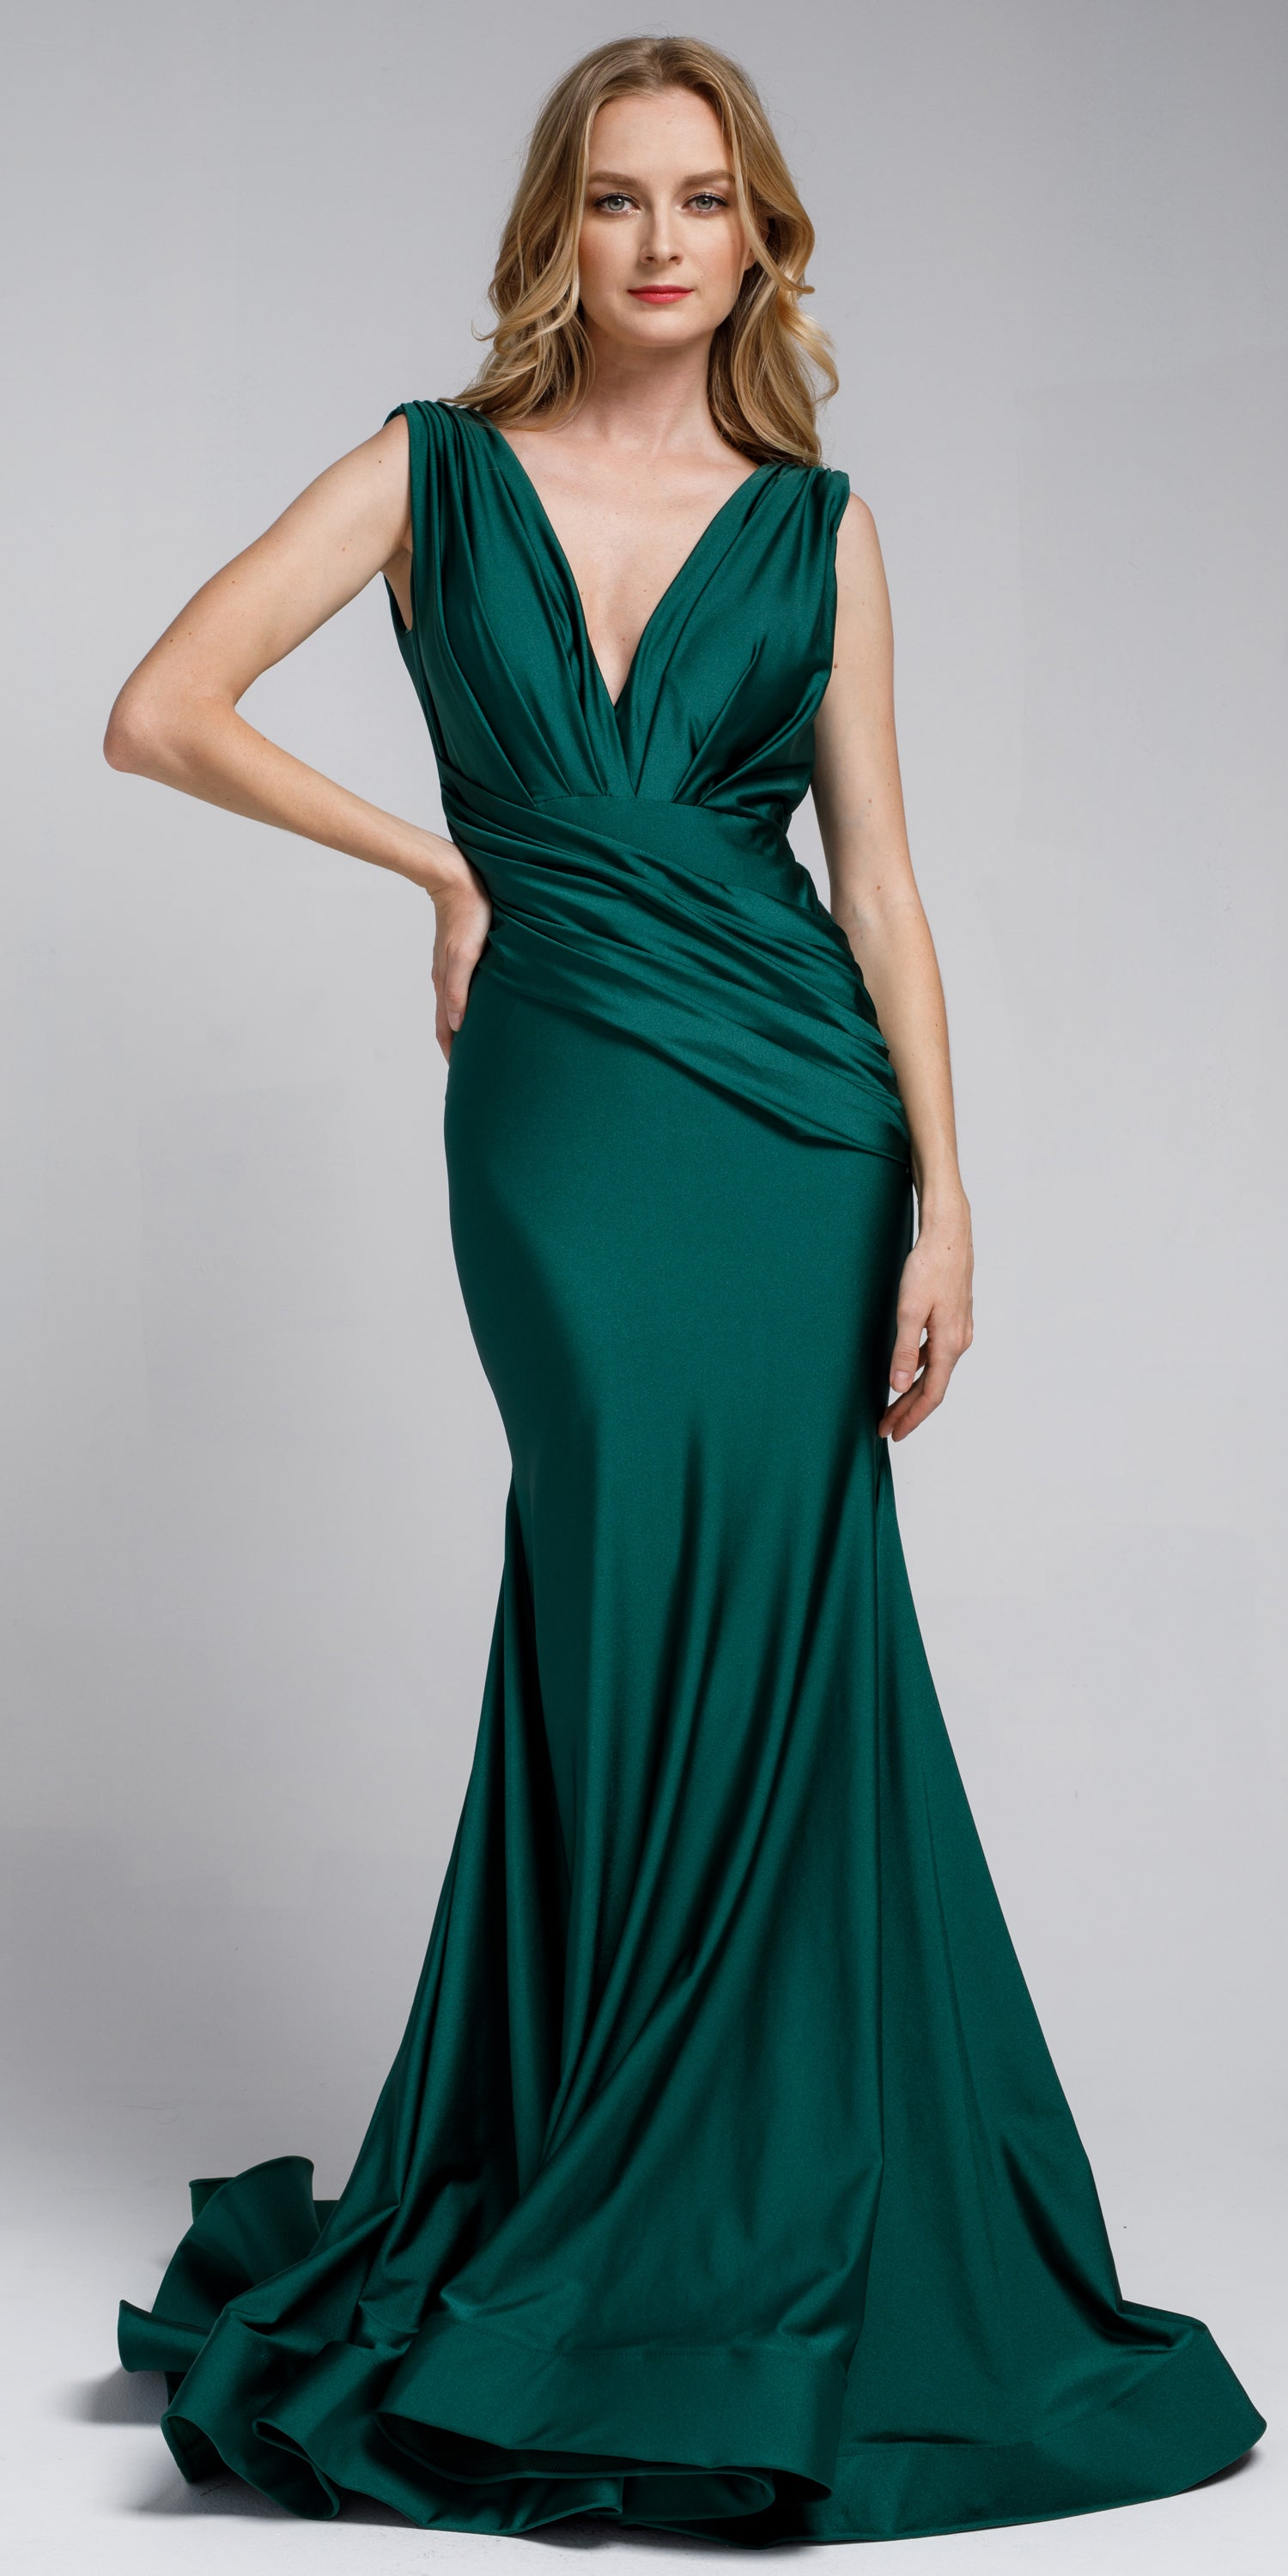 Main image of Satin Fitted V Neck Prom Dress